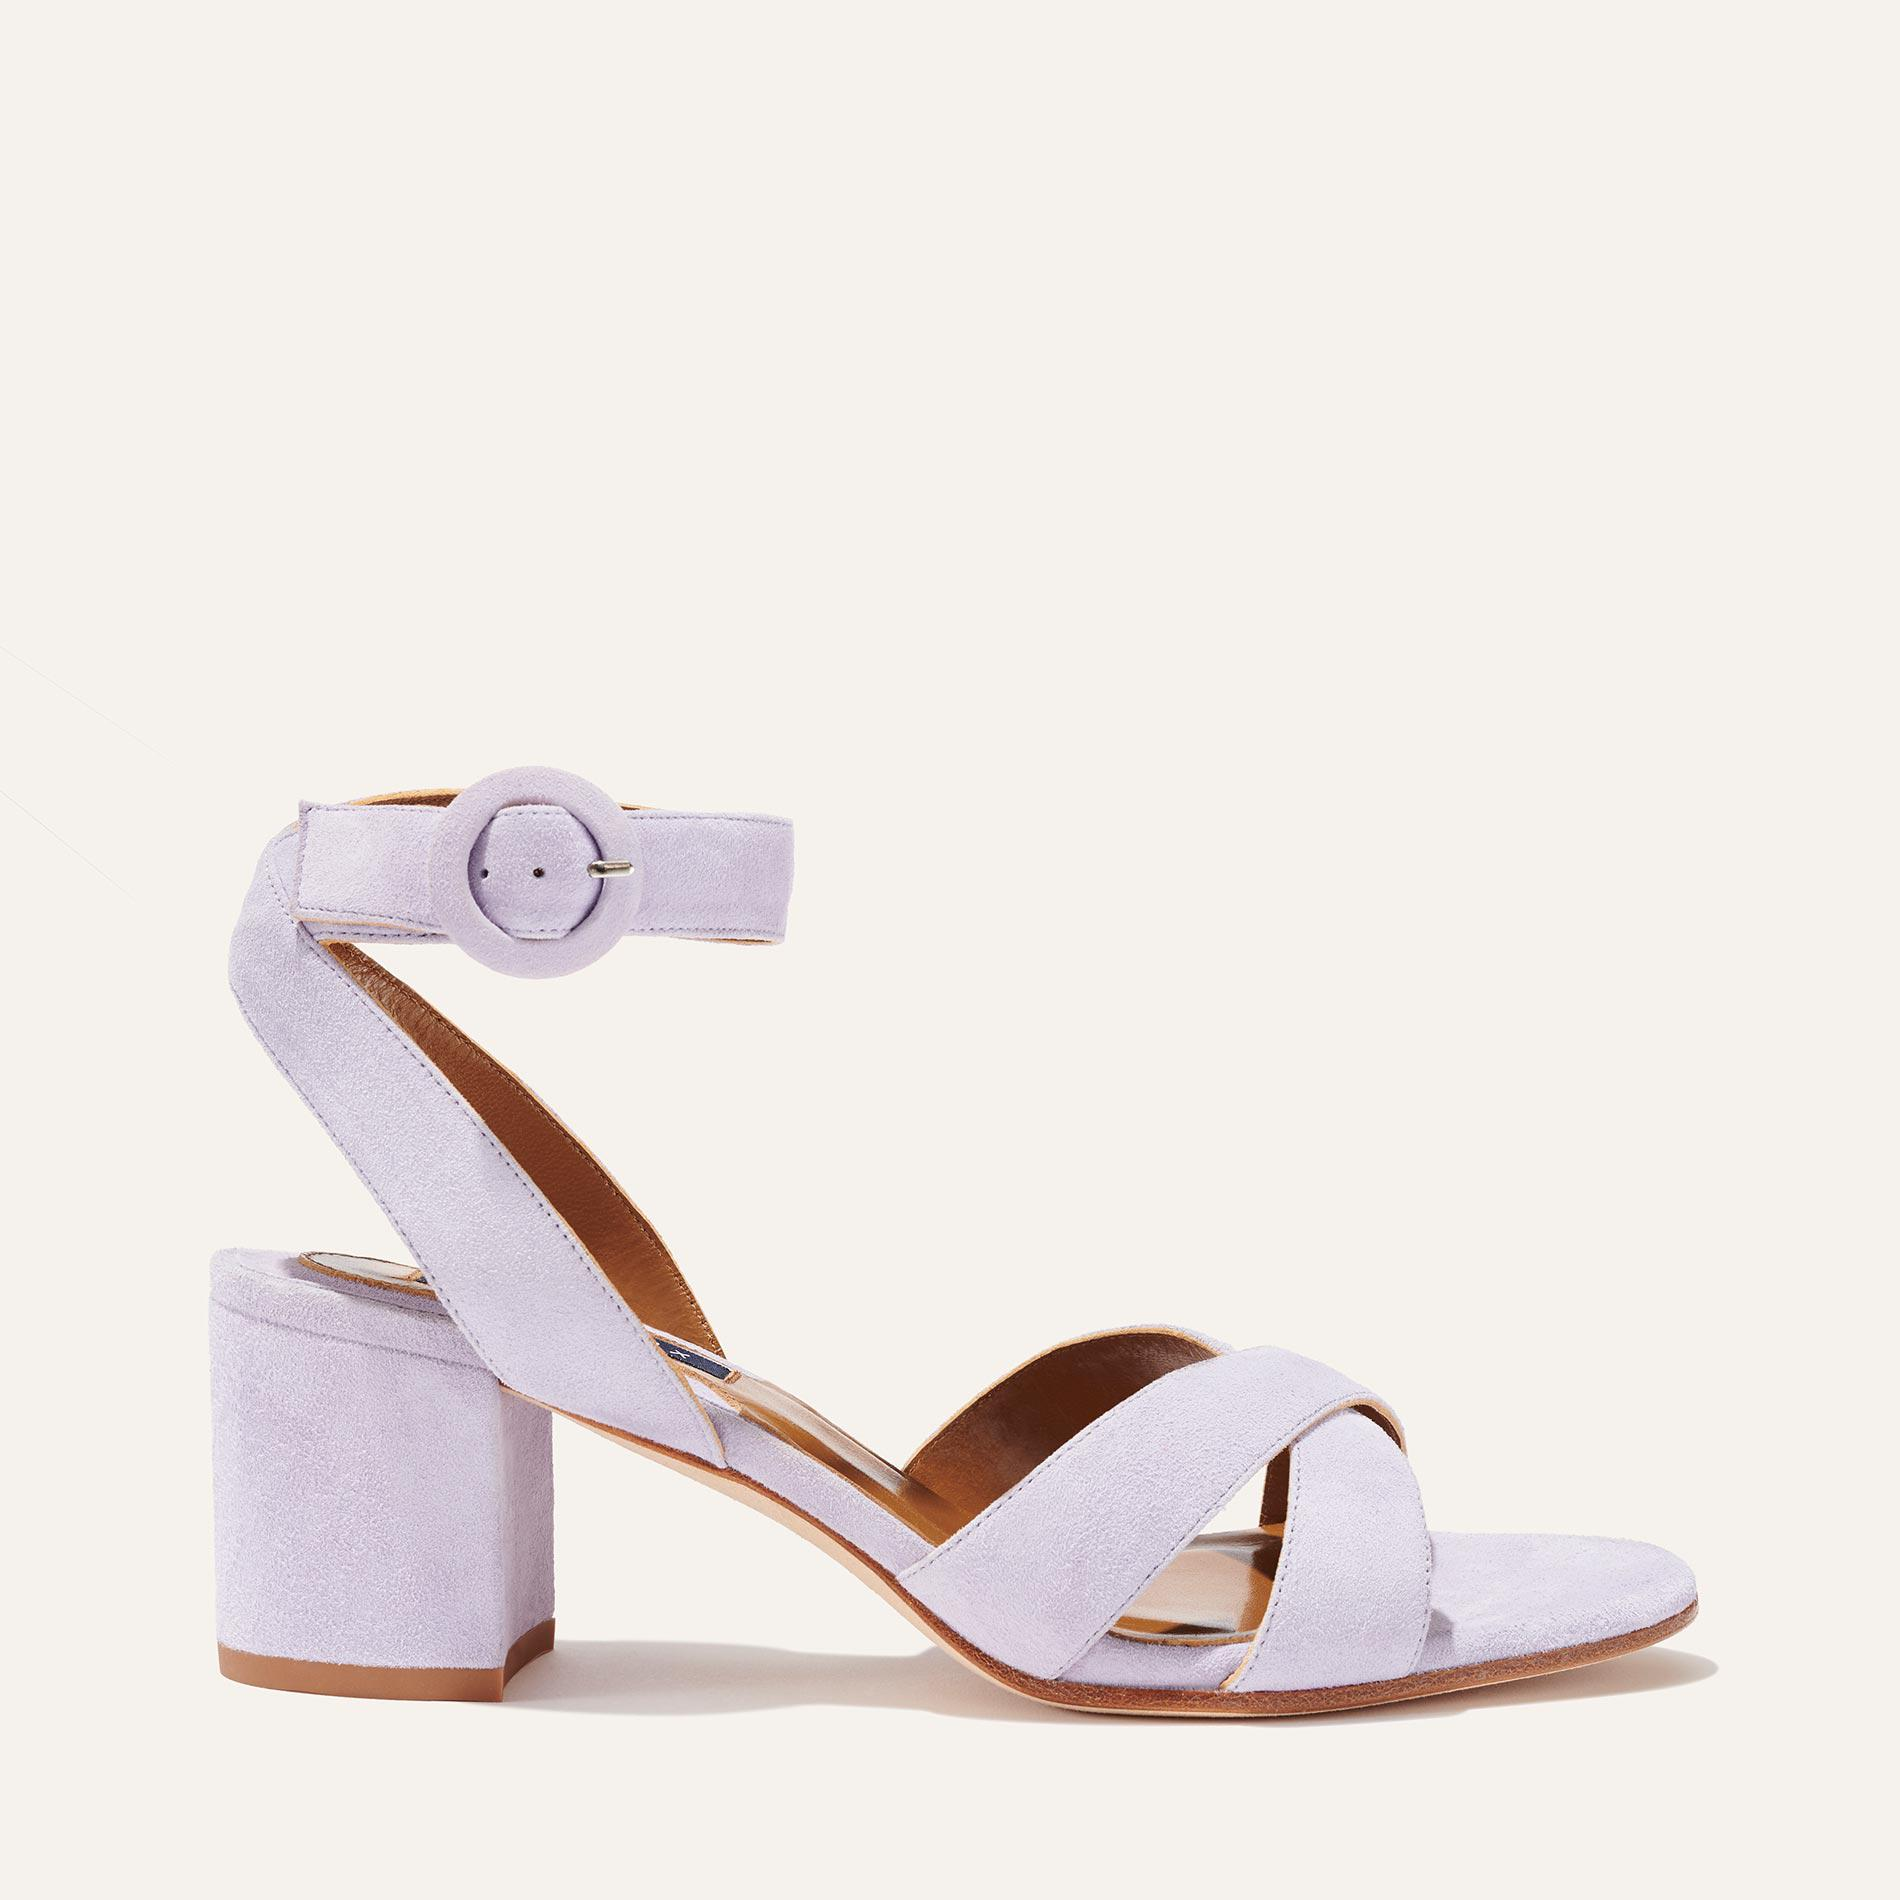 The City Sandal - Lilac Suede